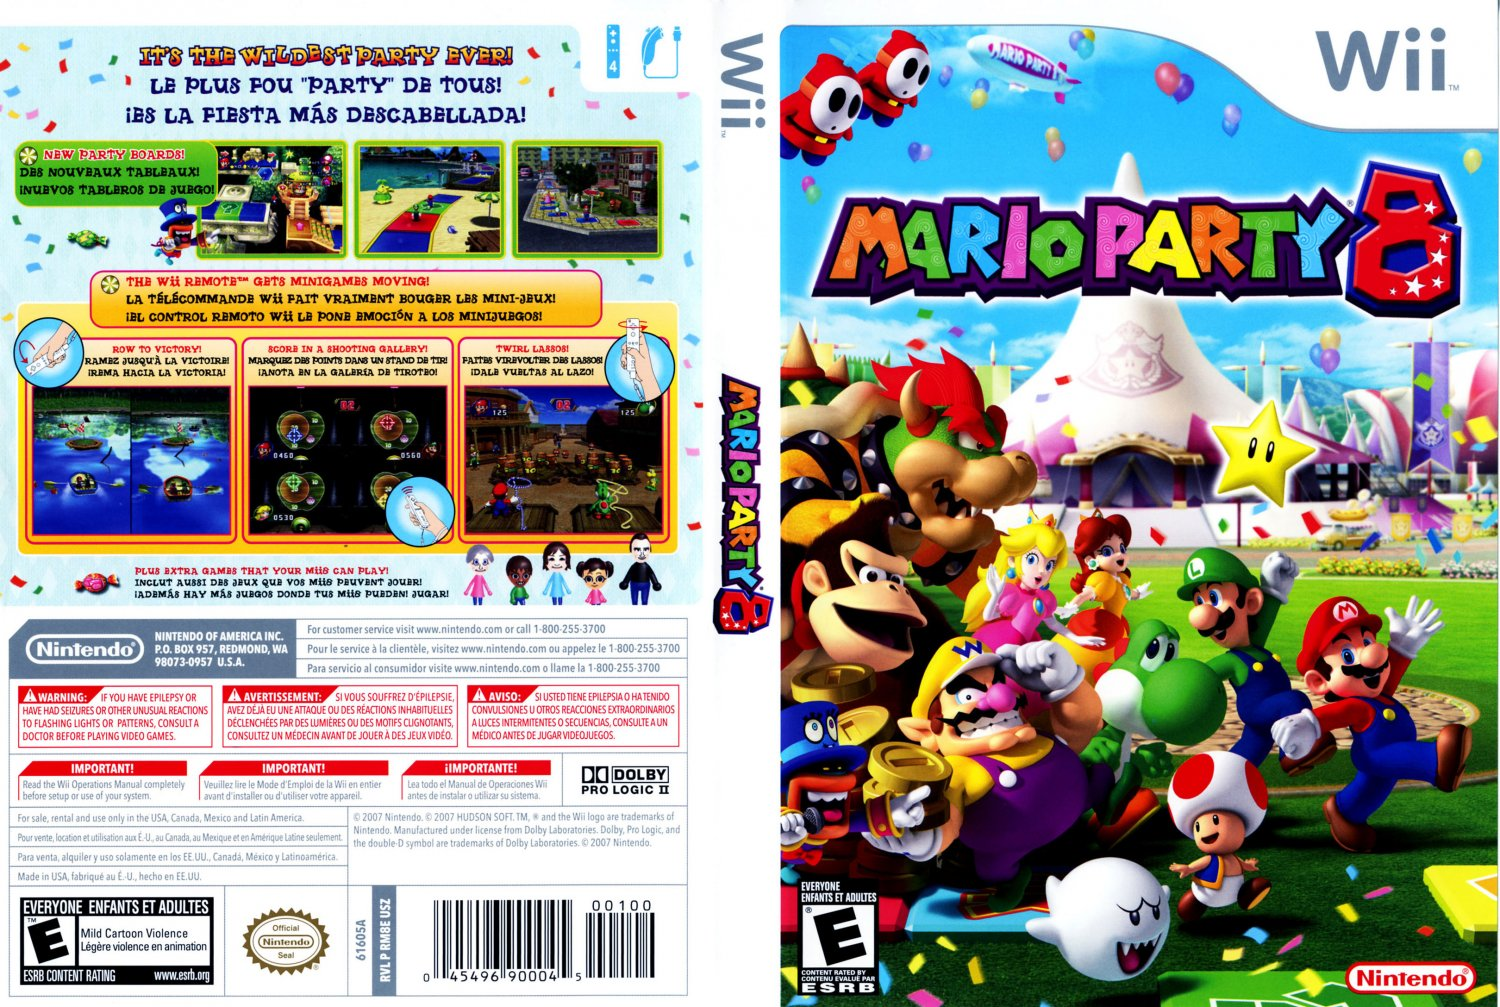 mario party 8 nintendo wii game covers mario party 8. Black Bedroom Furniture Sets. Home Design Ideas